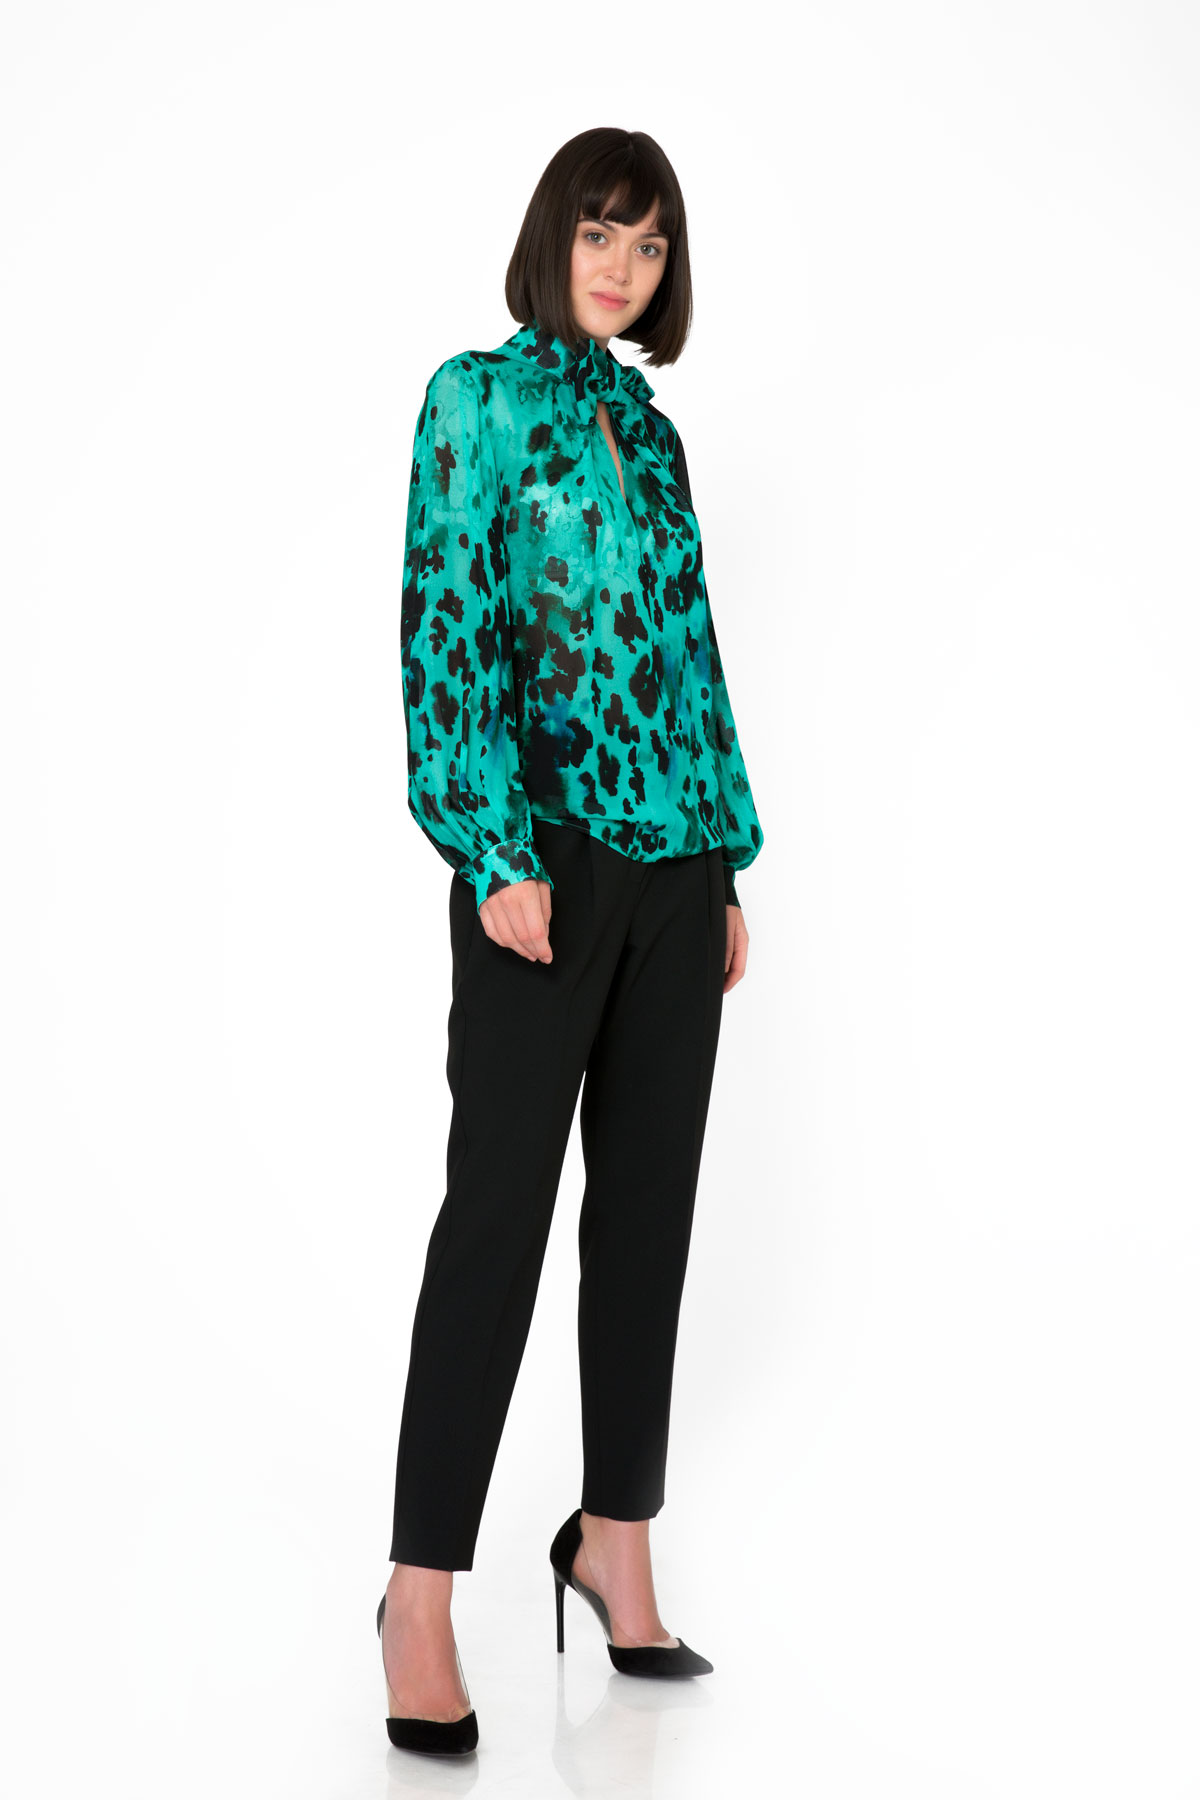 Bow Tie Detailed Leopard Patterned Green Blouse